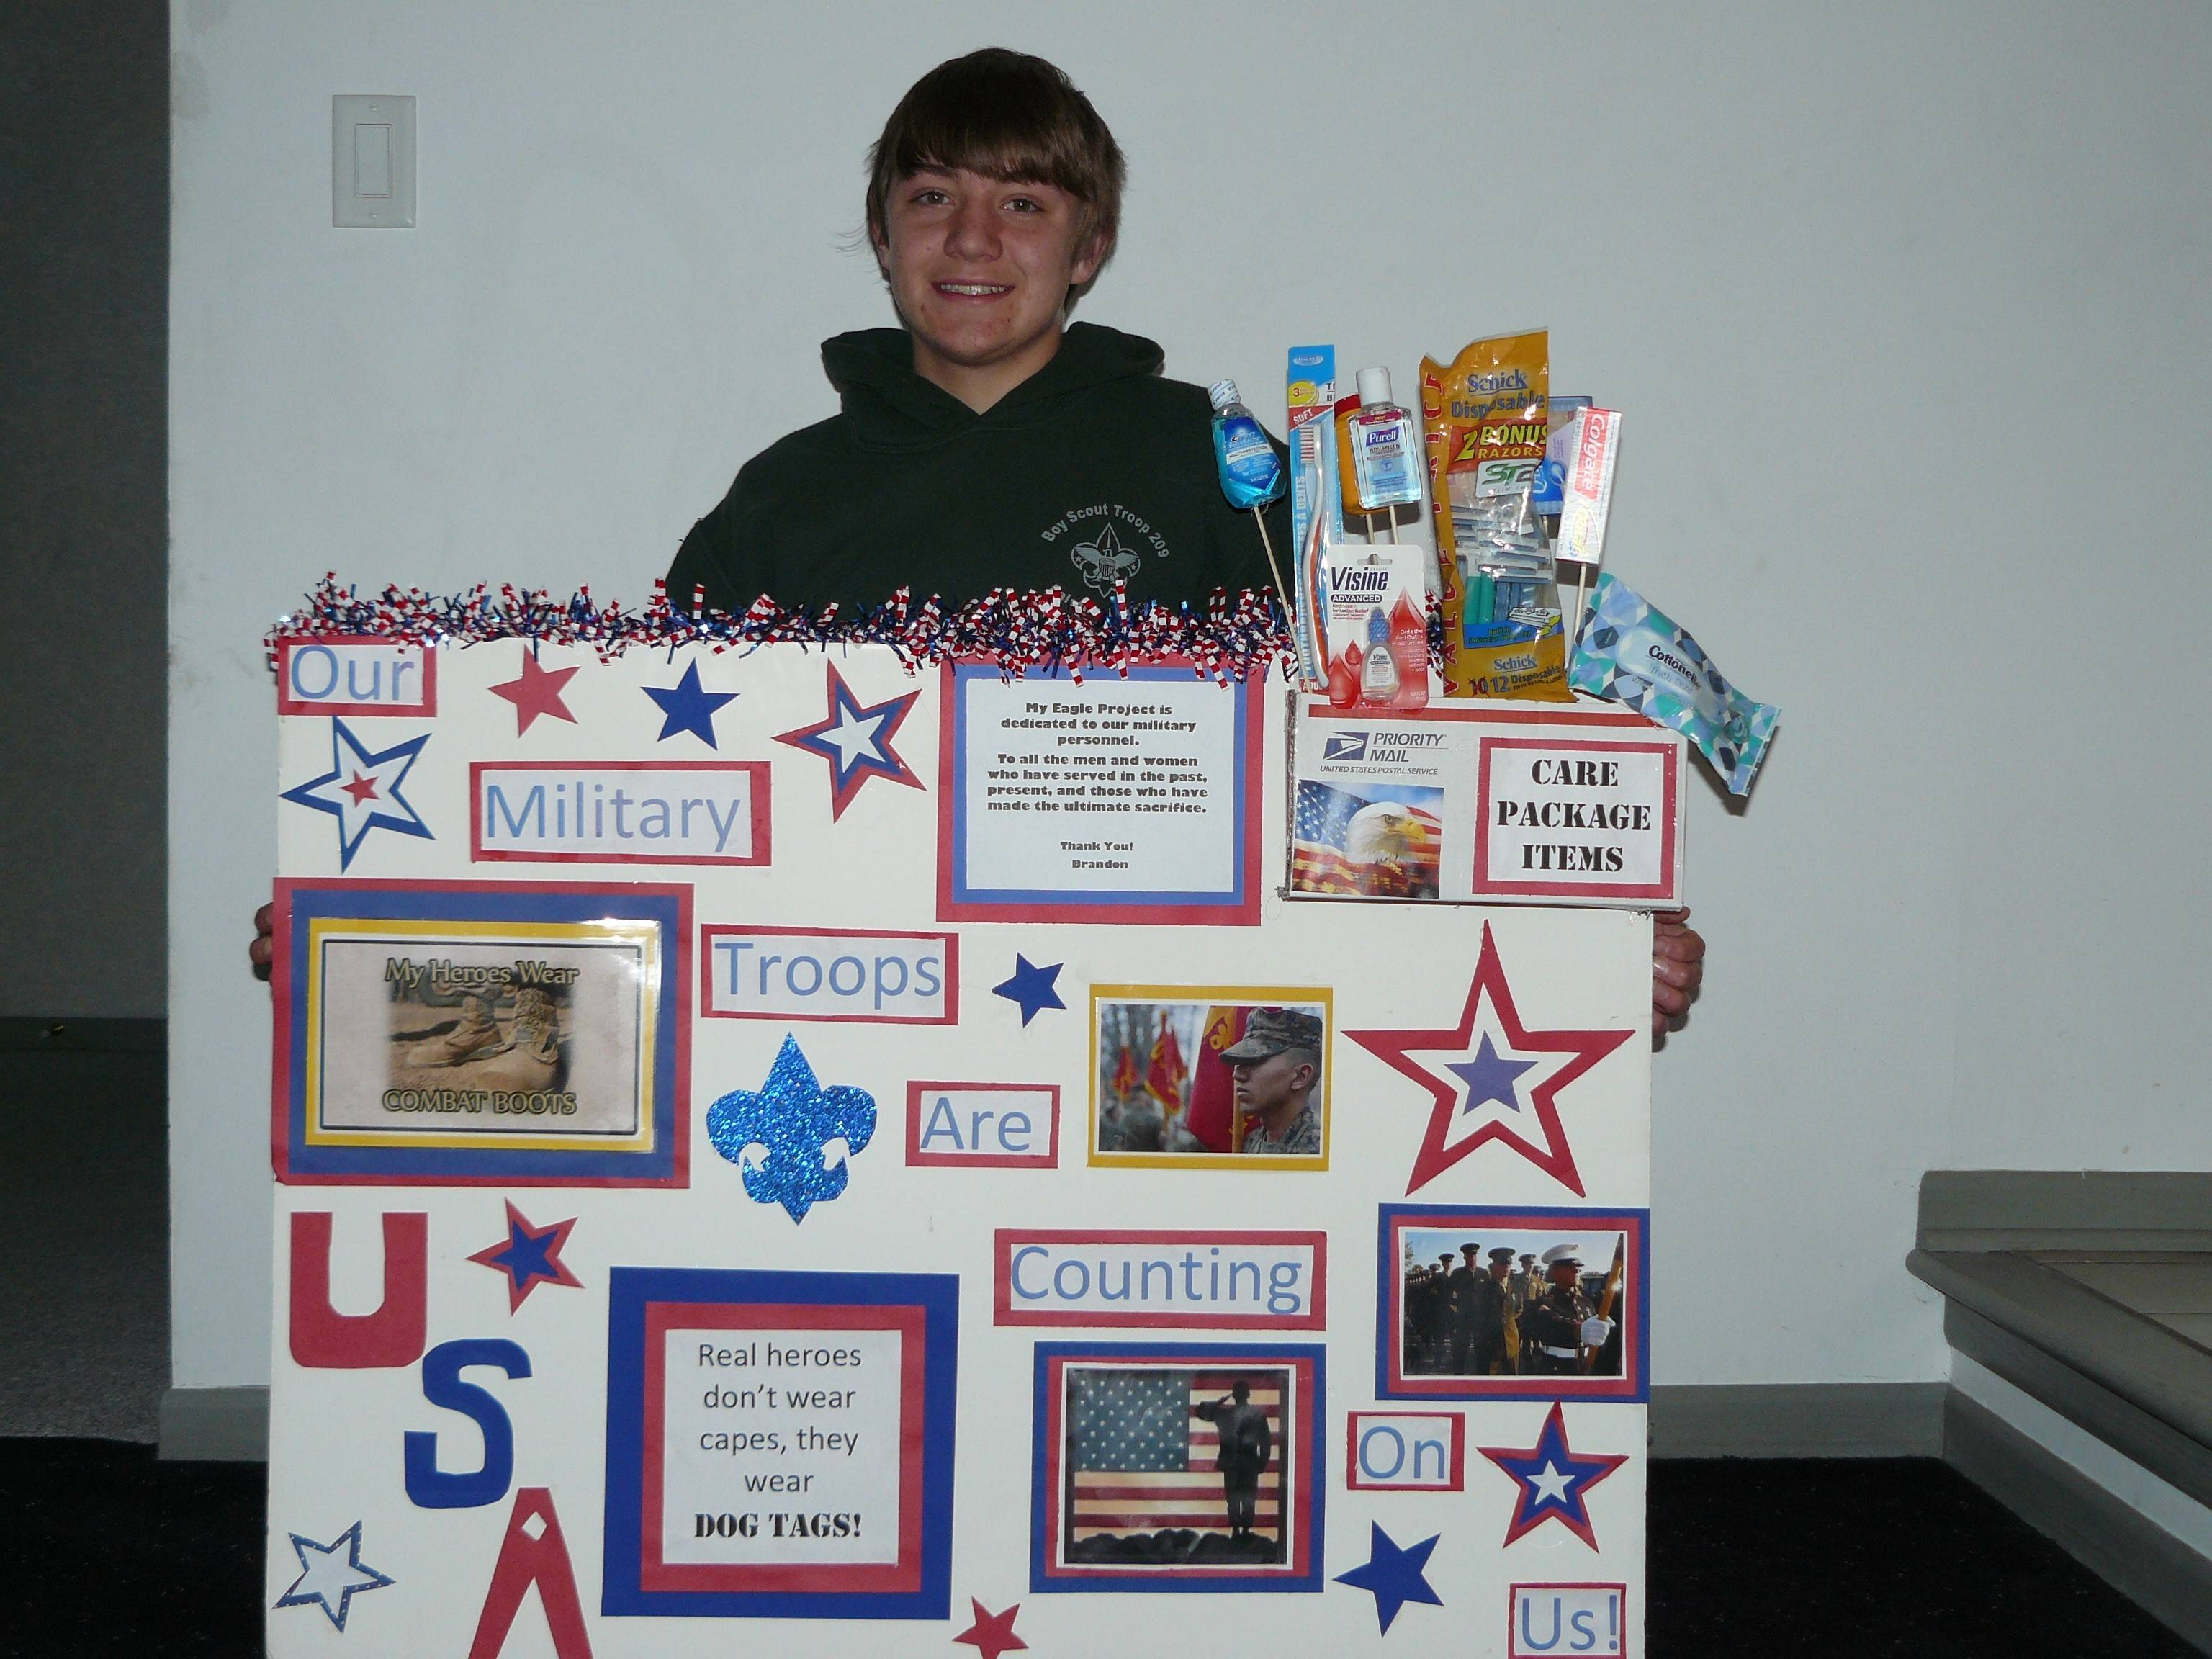 As part of his Eagle Scout project, Fremd High School freshman Brandon Matuszczak will hold a Care Package Drive for U.S. troops from noon to 4 p.m. Saturday, April 19, at Jewel, 45 S. Plum Grove Road, Palatine.